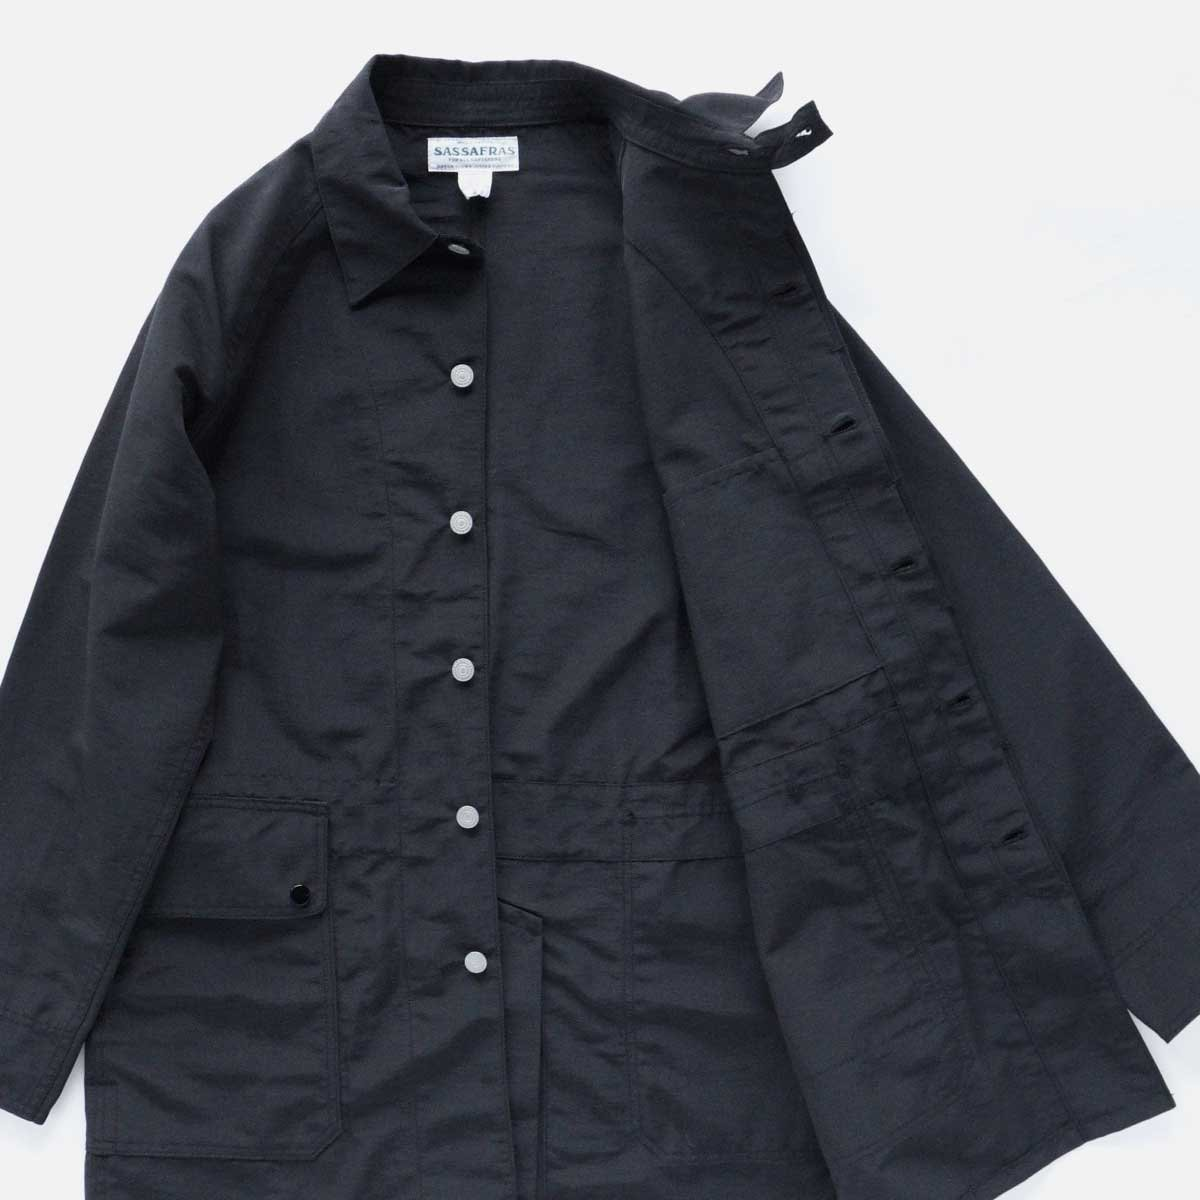 SASSAFRAS FALLLEAF COAT (BLACK)4